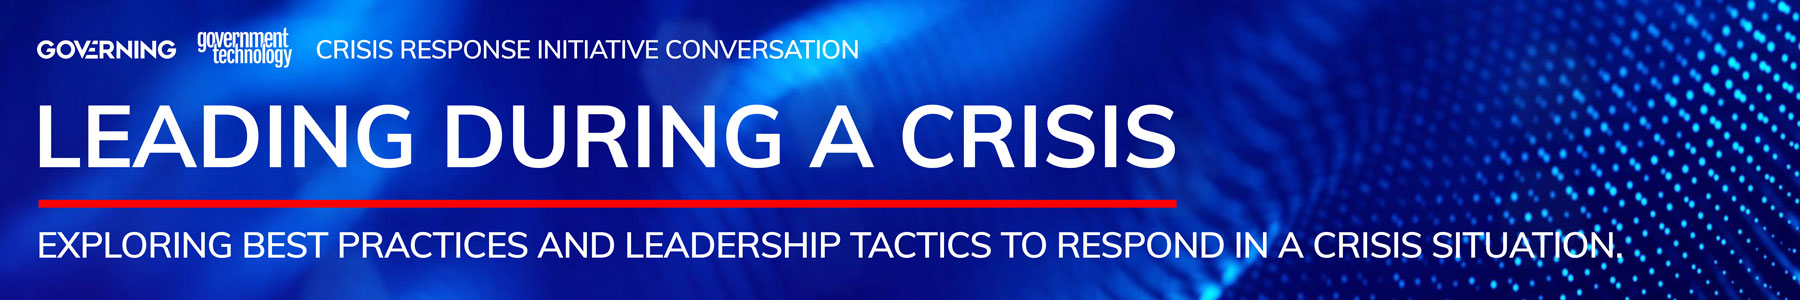 Leading During a Crisis: Exploring best practices and leadership tactics to respond in a crisis situation